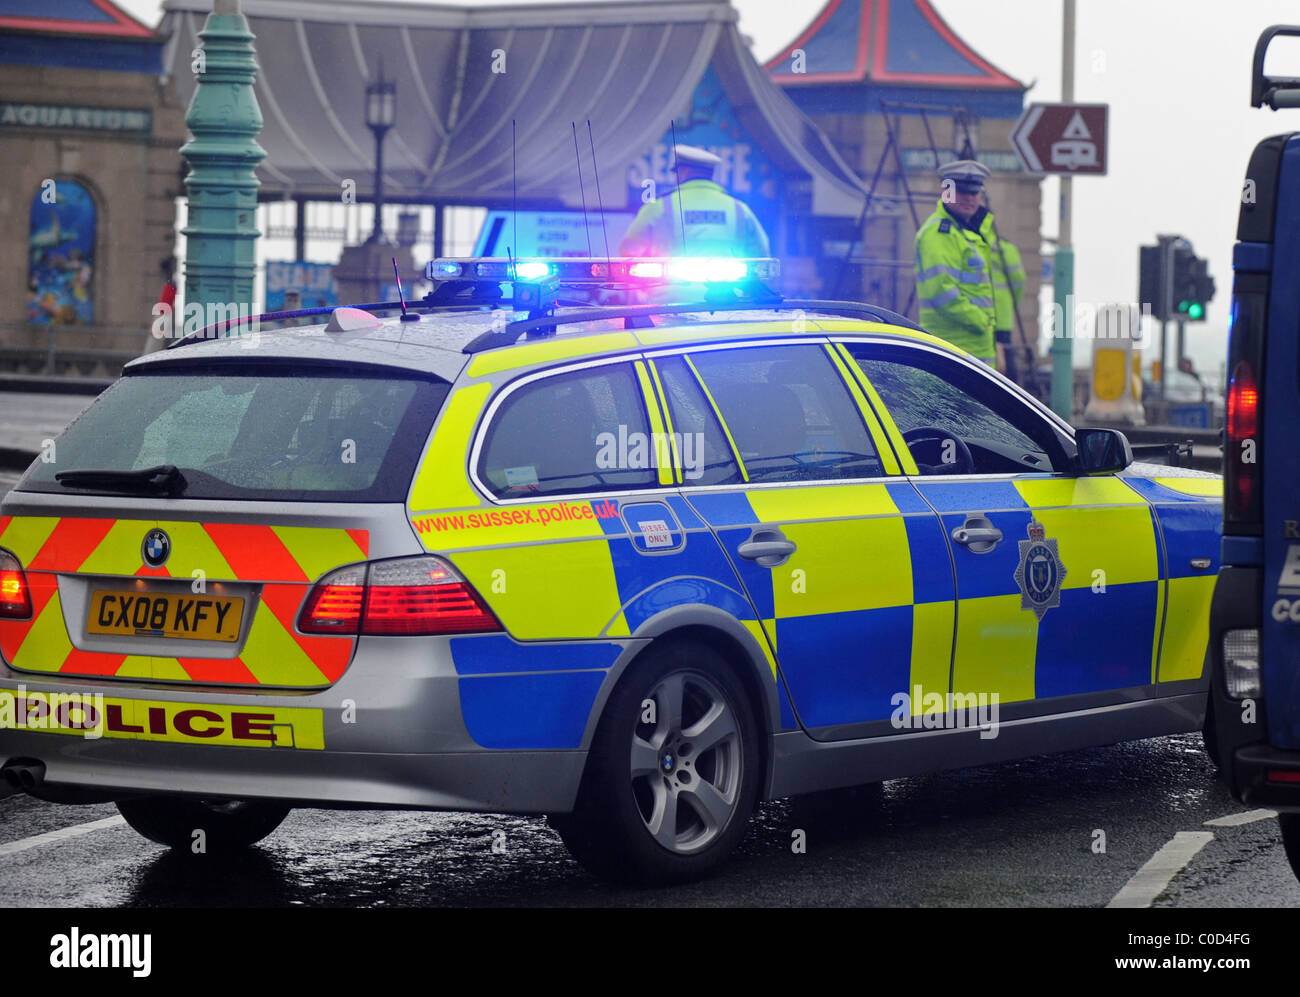 the blue light on top of a a police car flashing at the scene of a